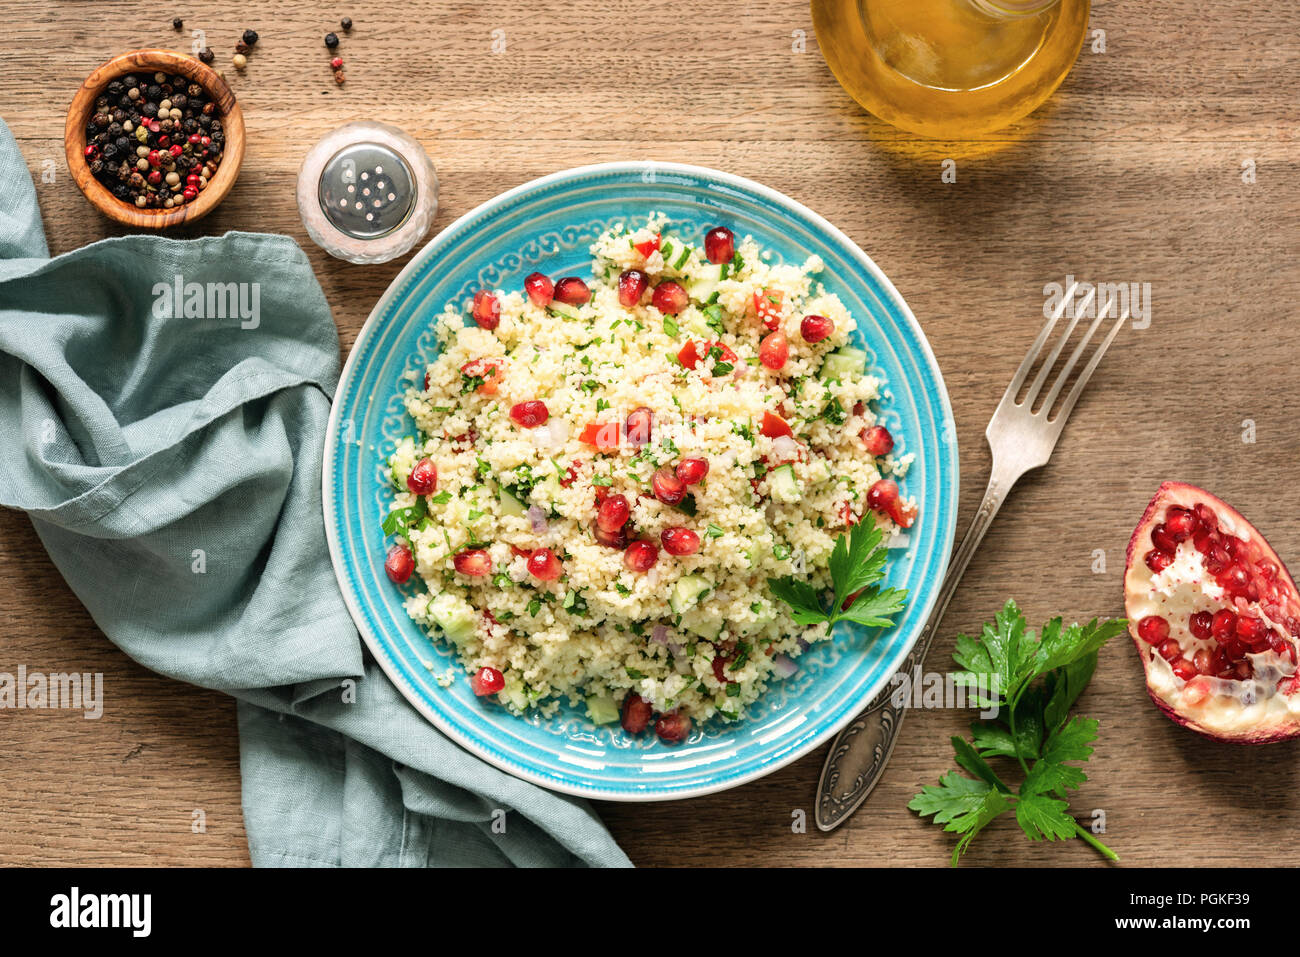 Couscous salad Tabbouleh with pomegranate seeds served on traditional turquoise plate. Arabic food - Stock Image